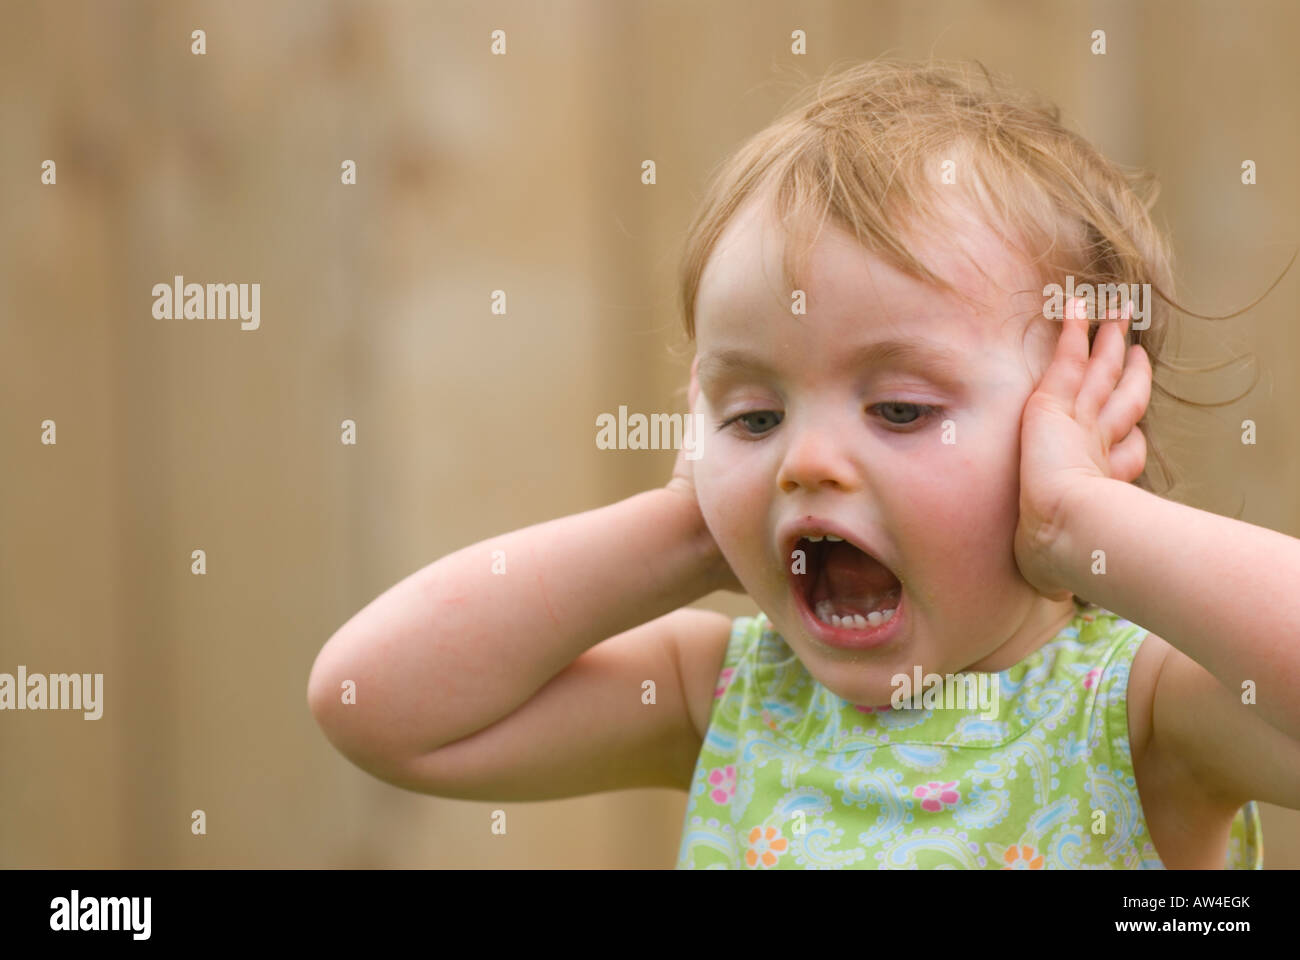 Two year old girl throwing a temper tantrum - Stock Image